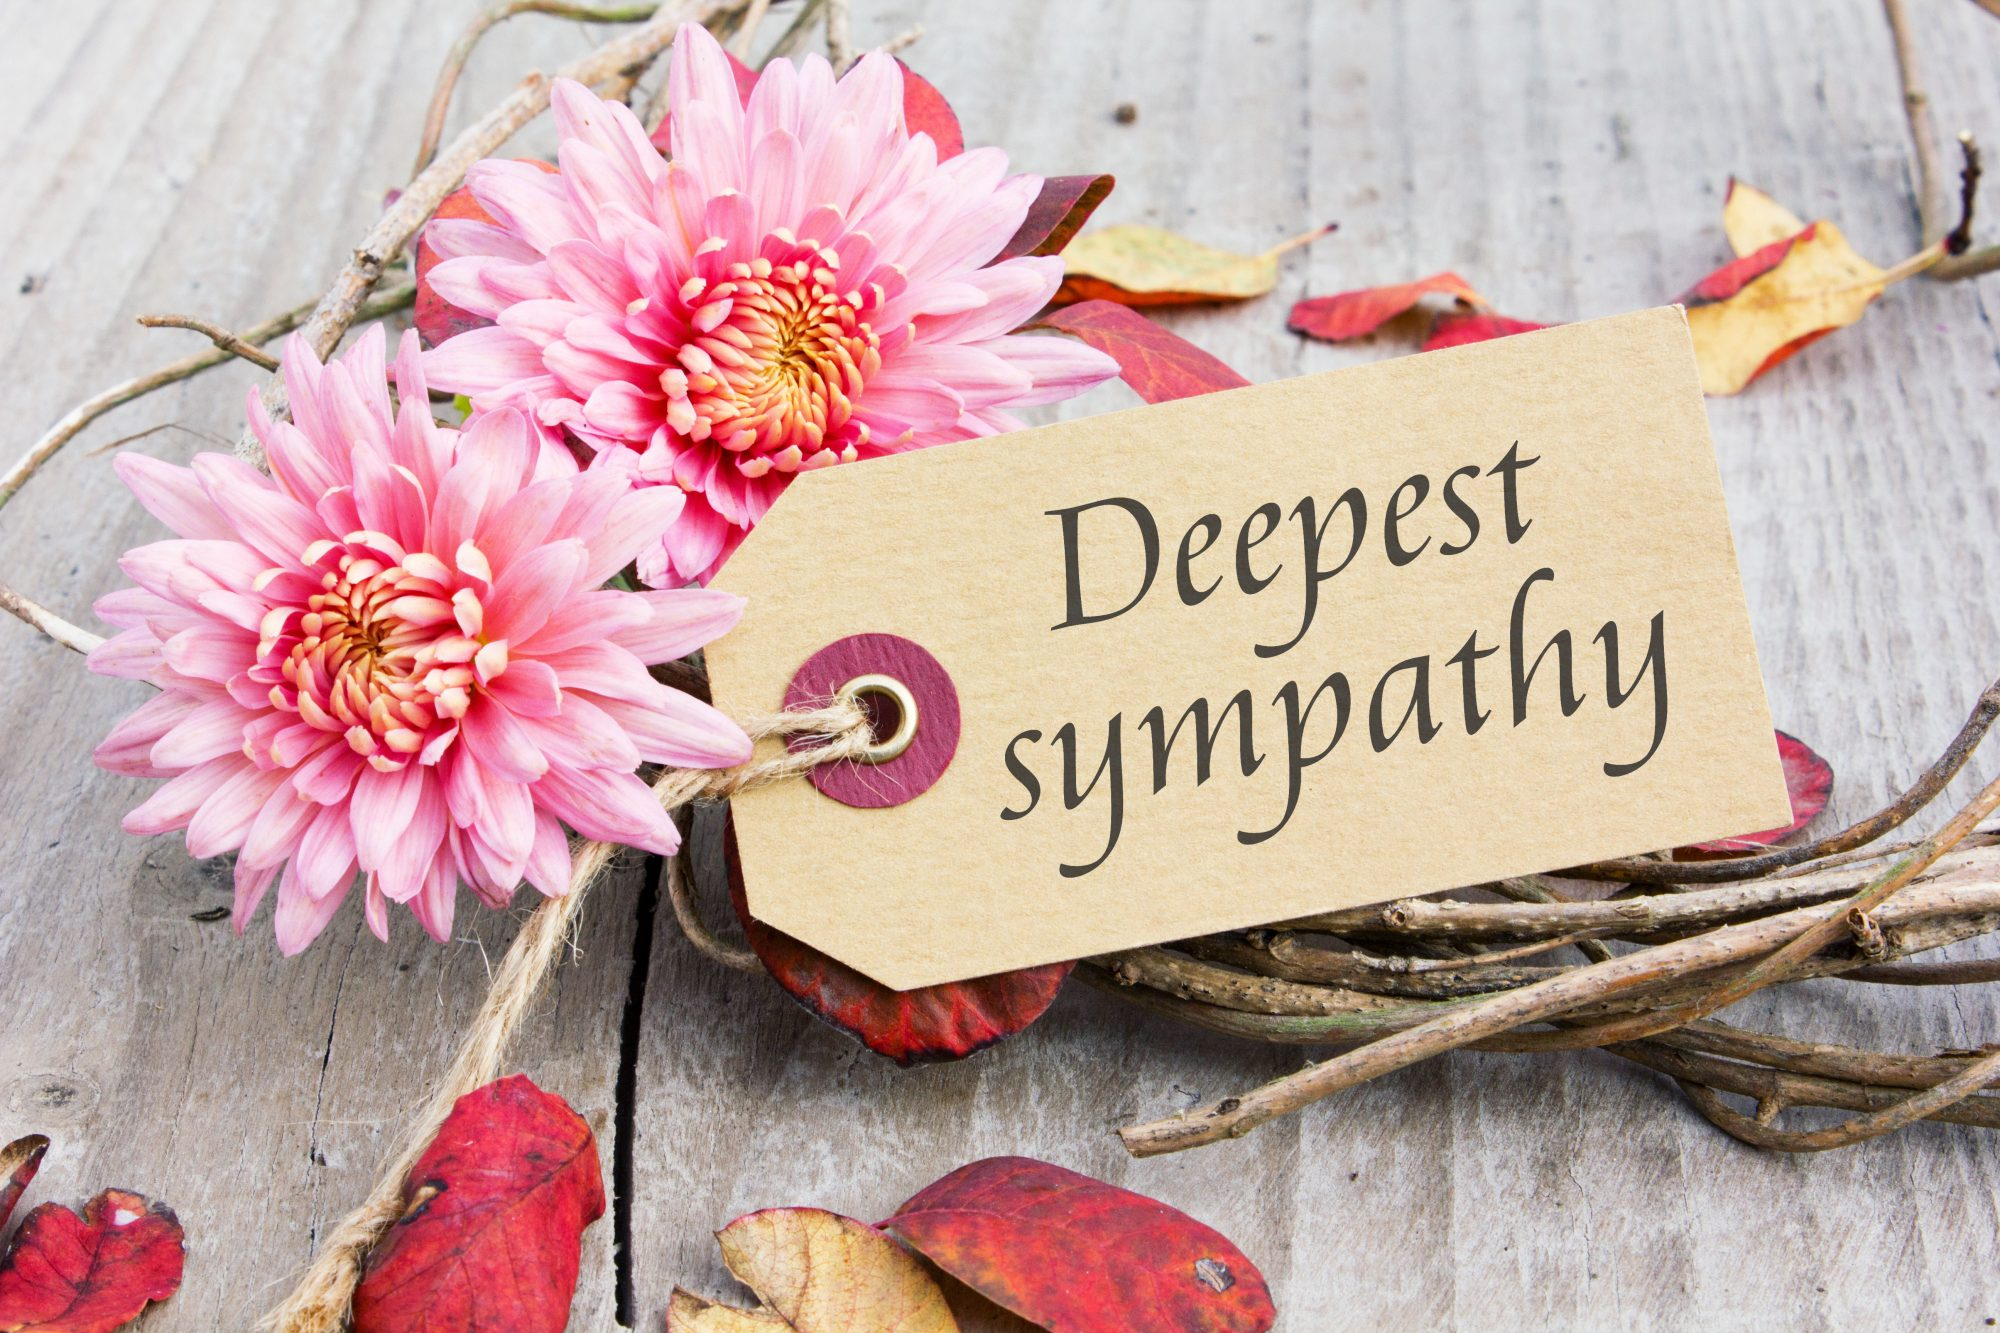 deepest sympathy card and flowers